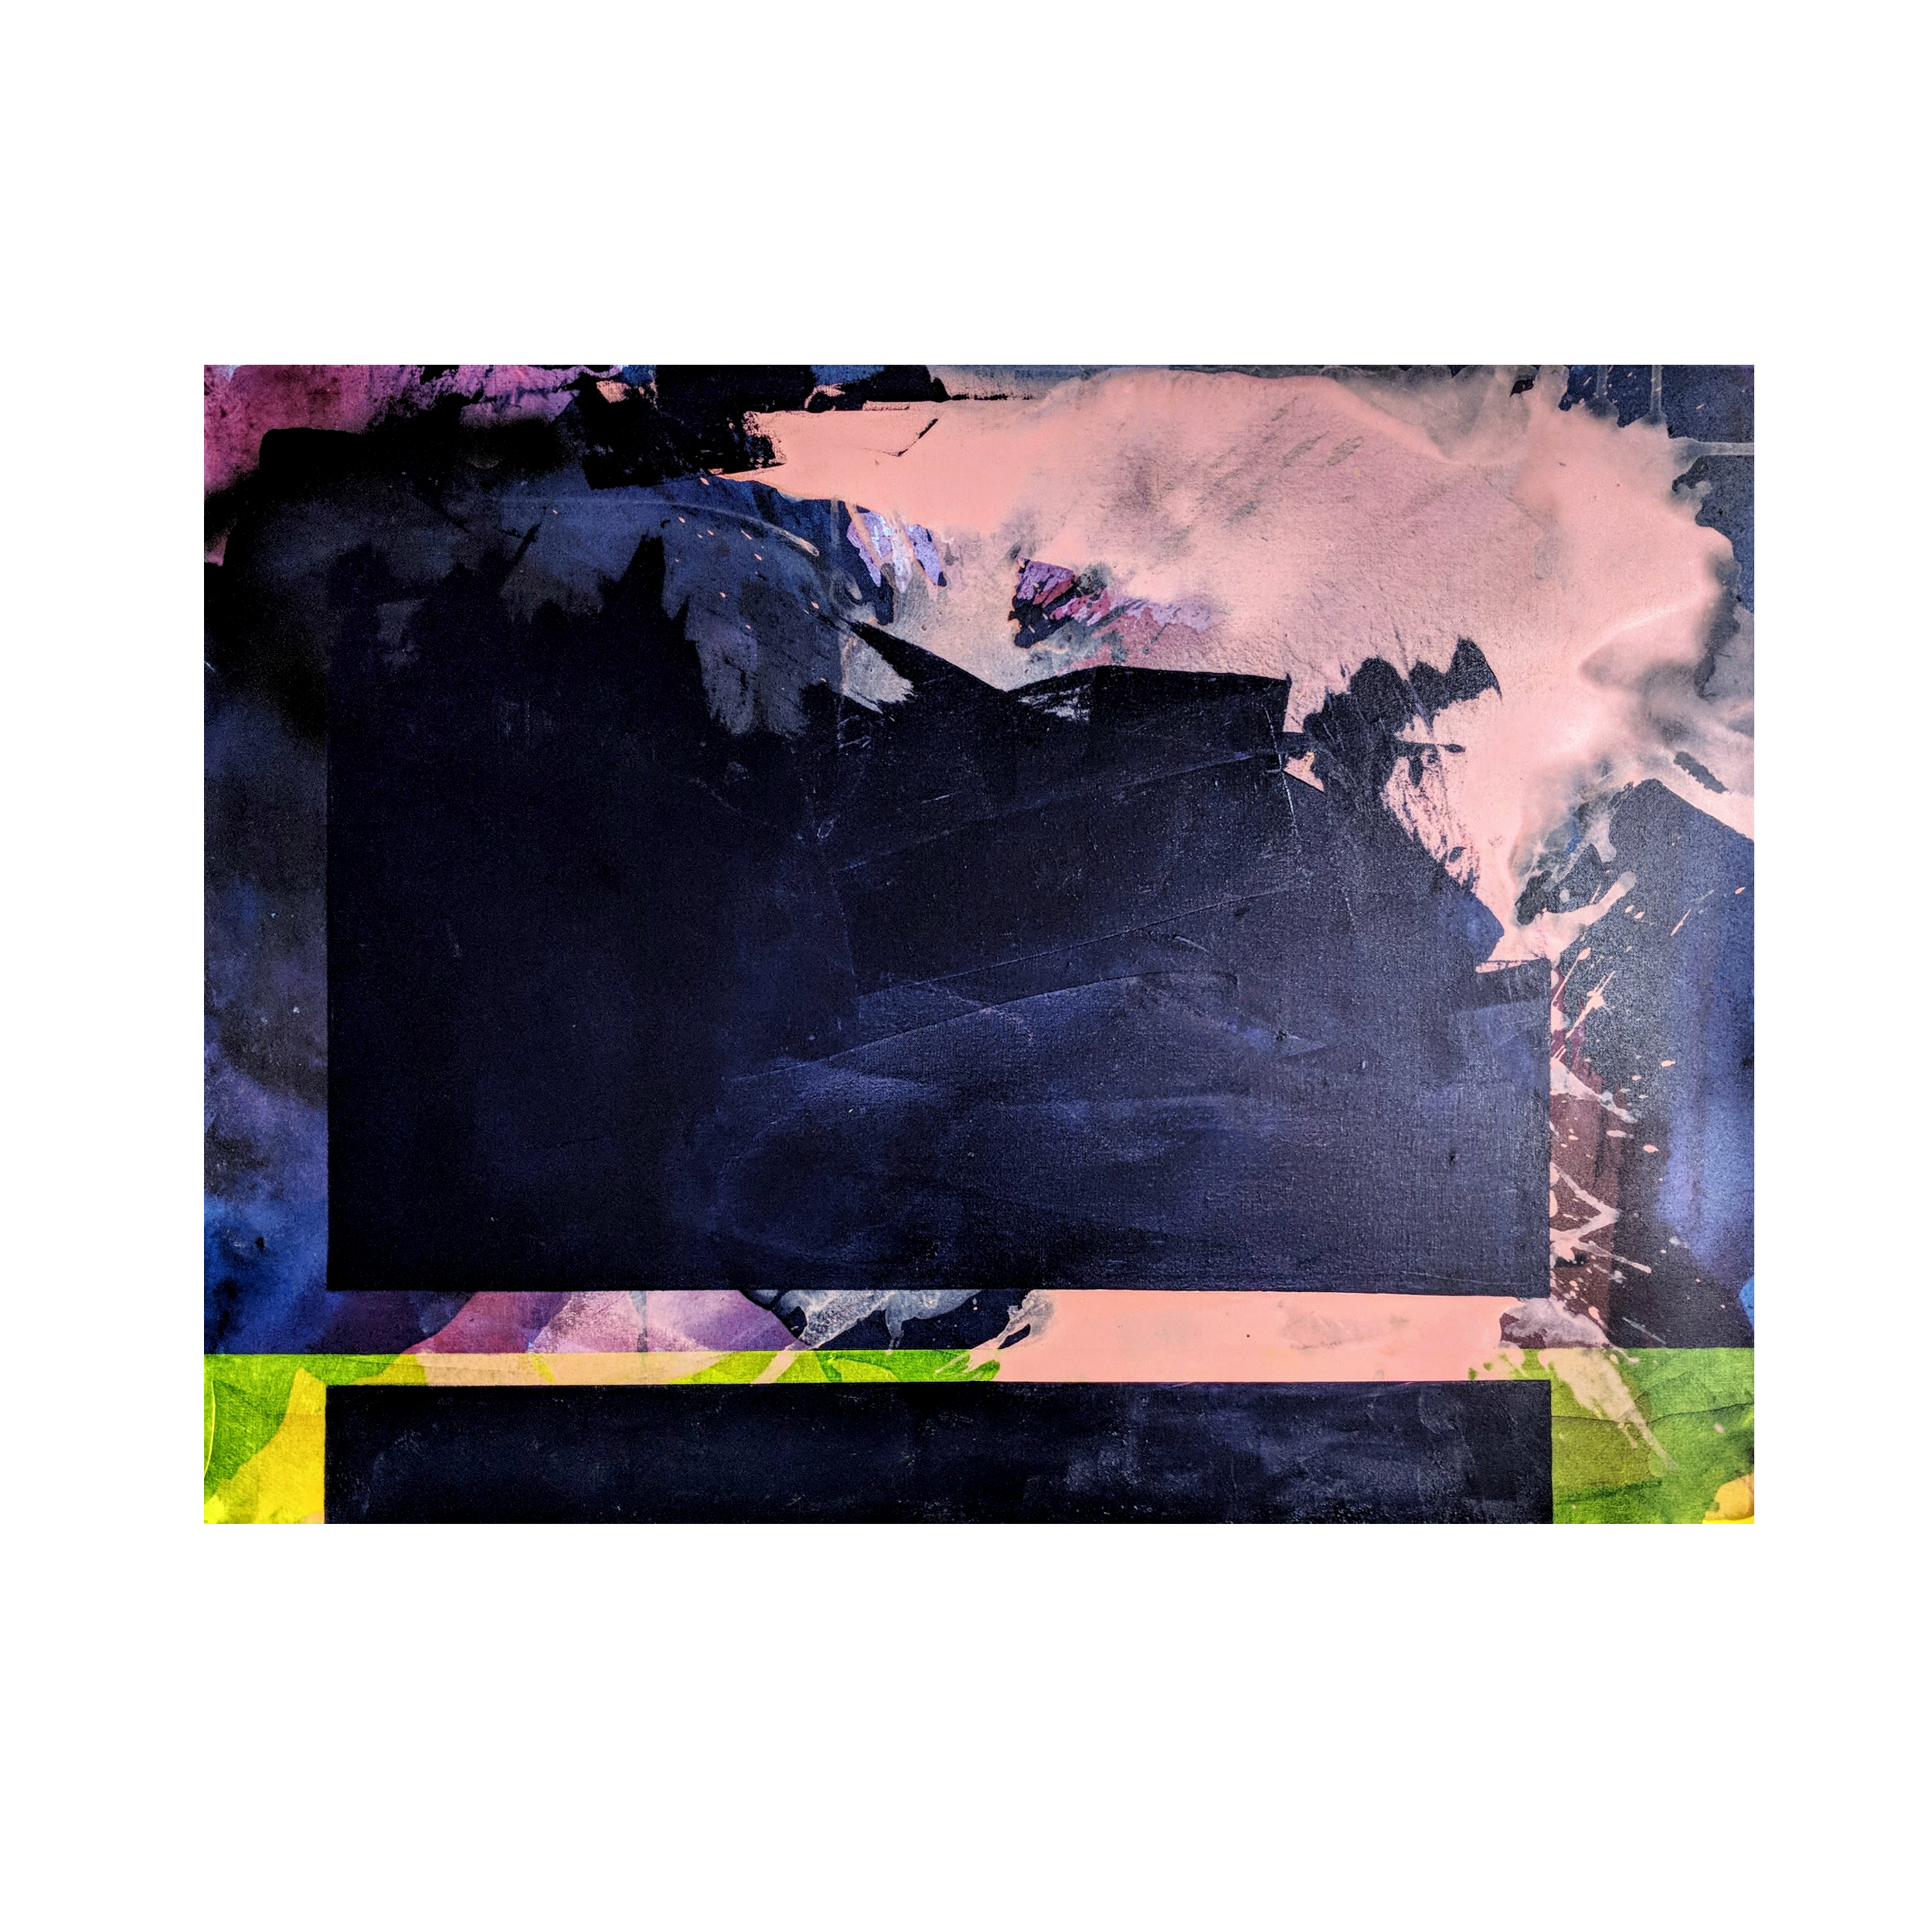 NEW - Highlight The Important Parts - 36x48 - $895